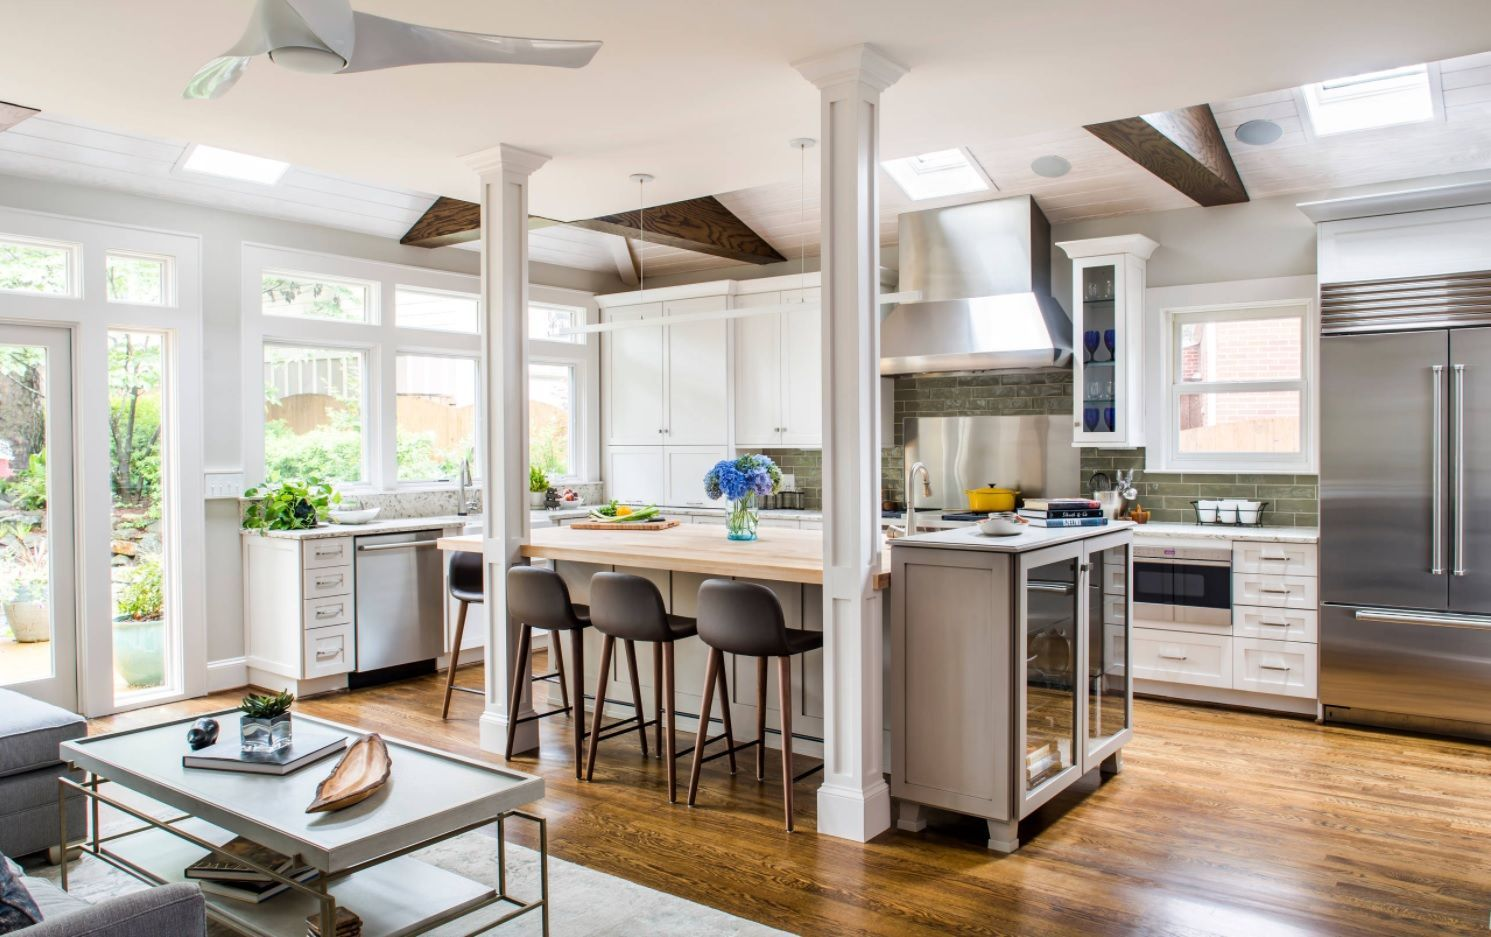 Industrial theme for the large open kitchen design in studio apartment